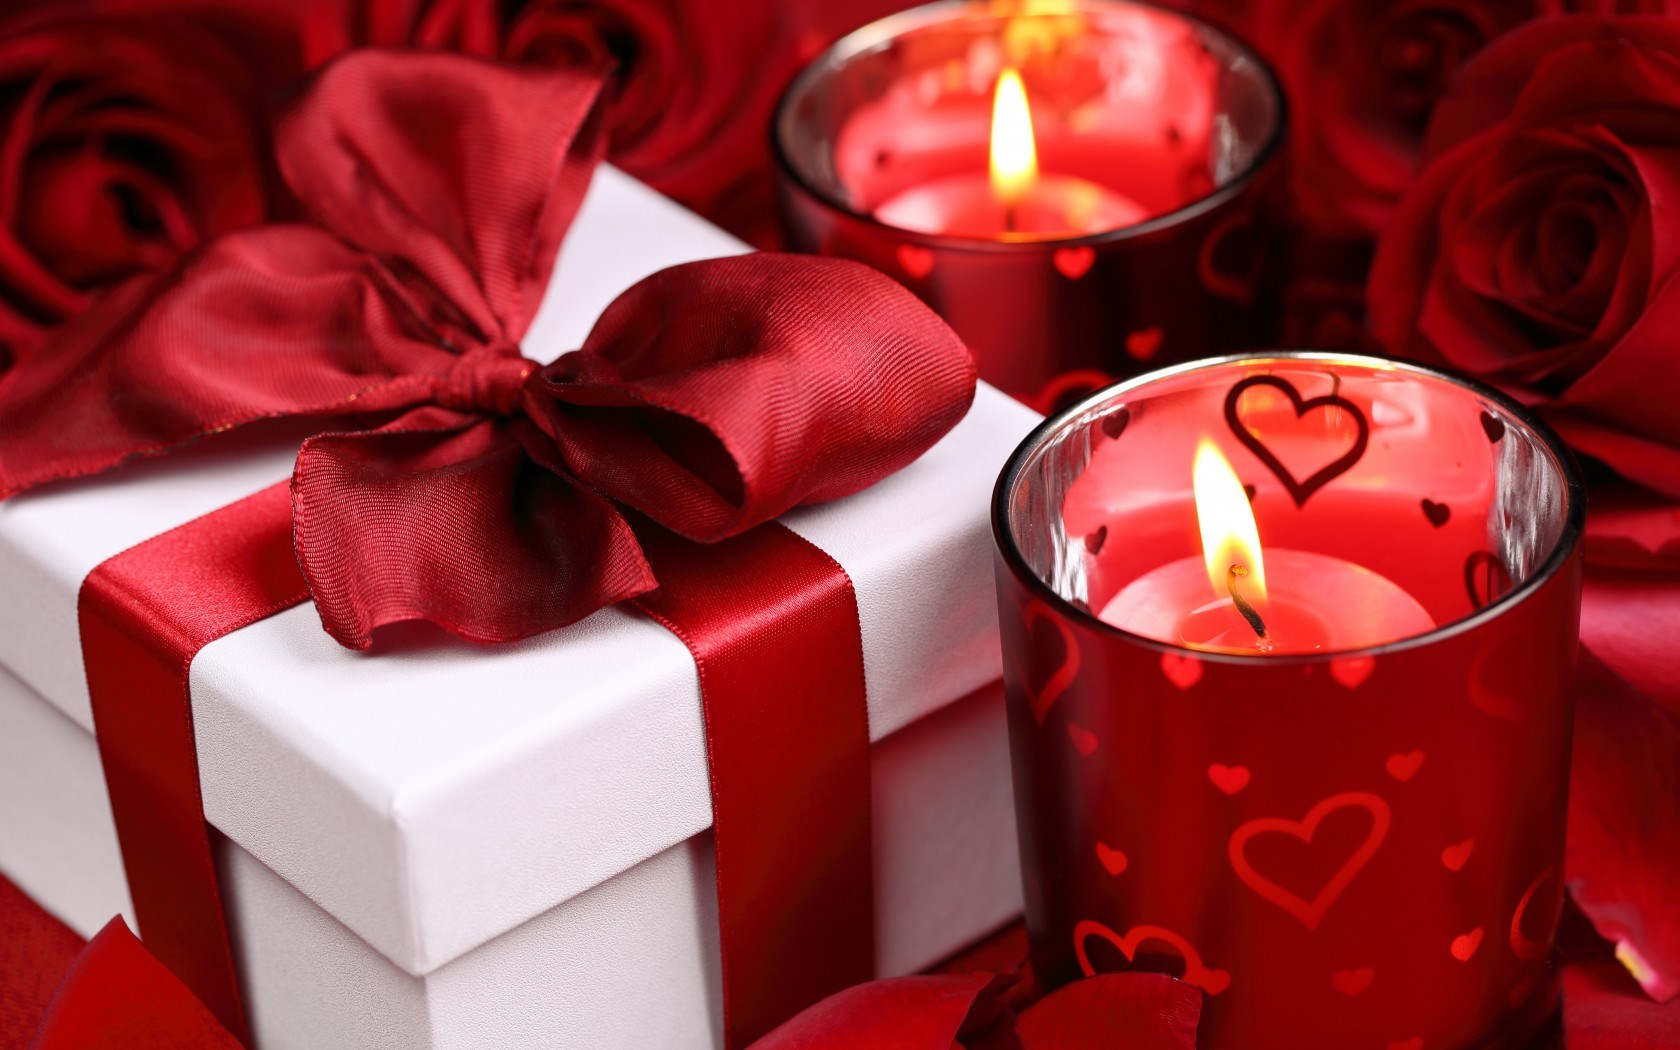 6915484-roses-gift-candles-hearts-valentines-day-love